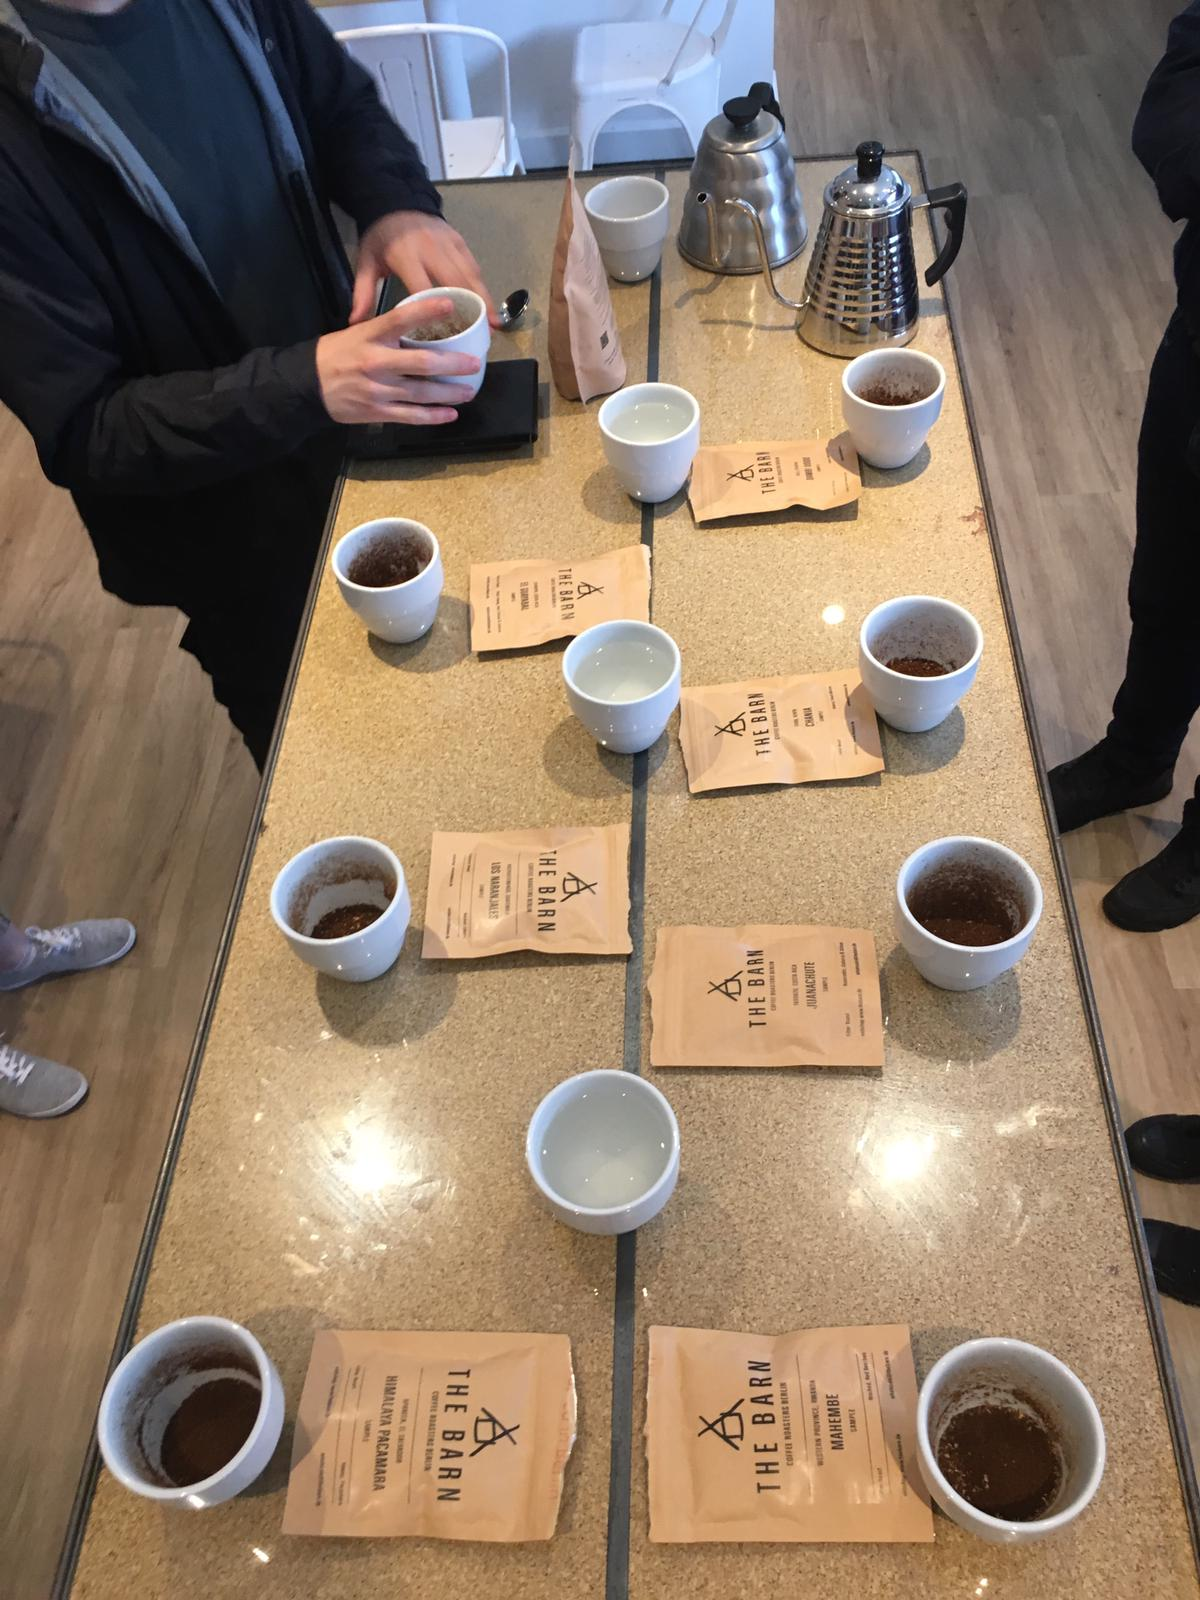 barn cupping august 2019 photo 4.jpg